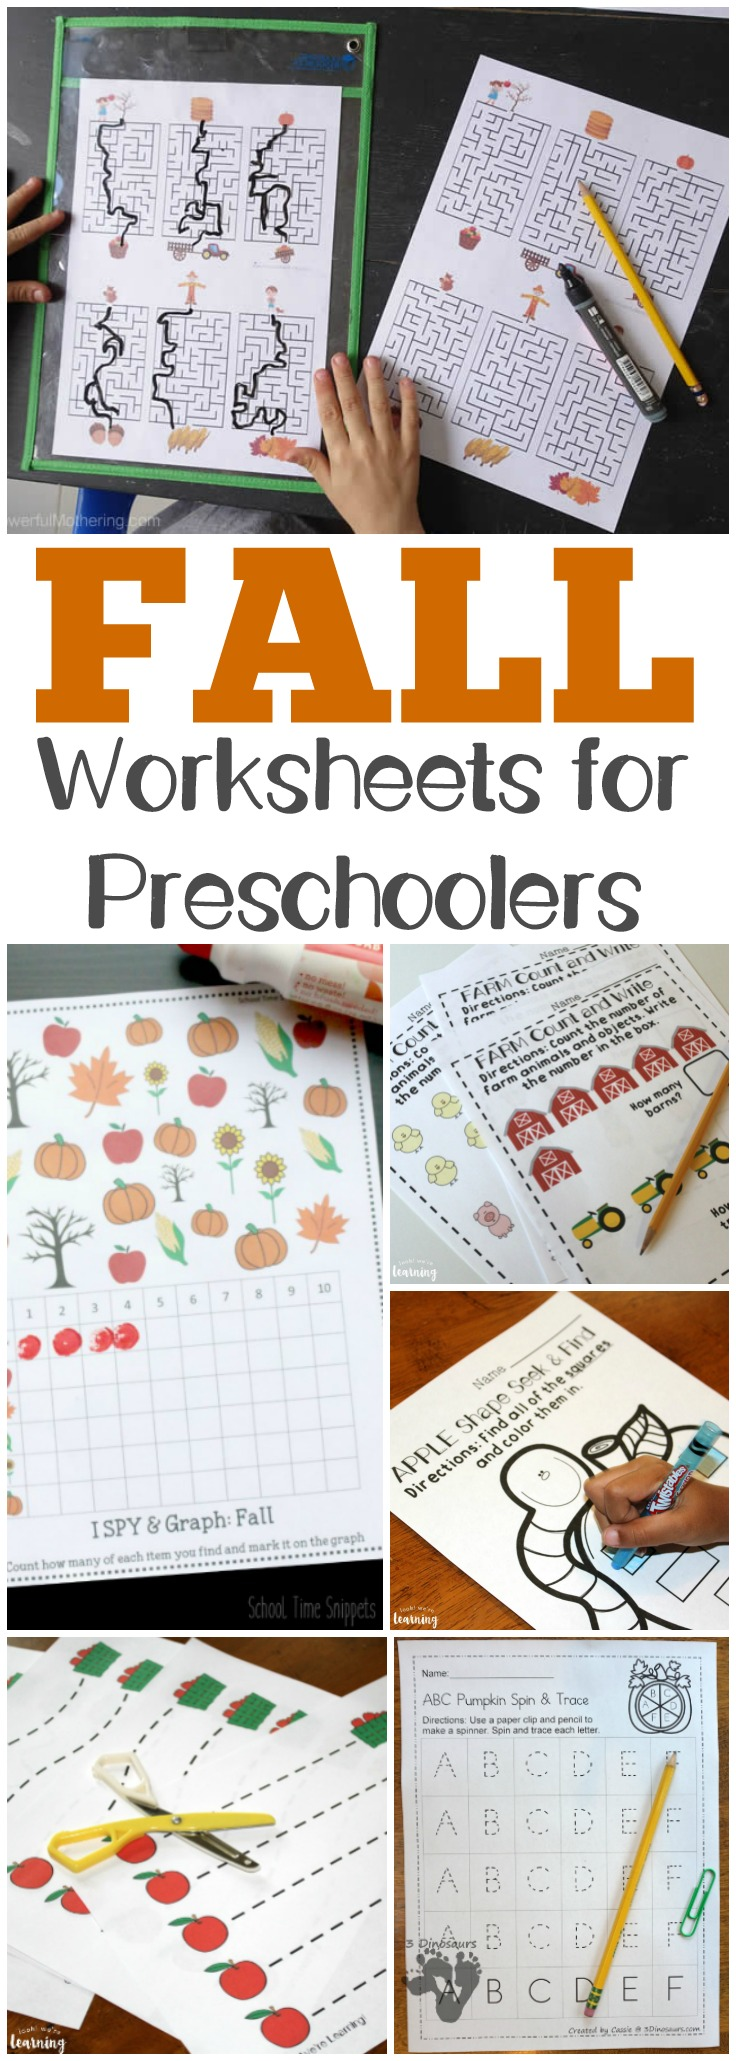 Use these fall preschool worksheets to help your little ones learn all autumn long!